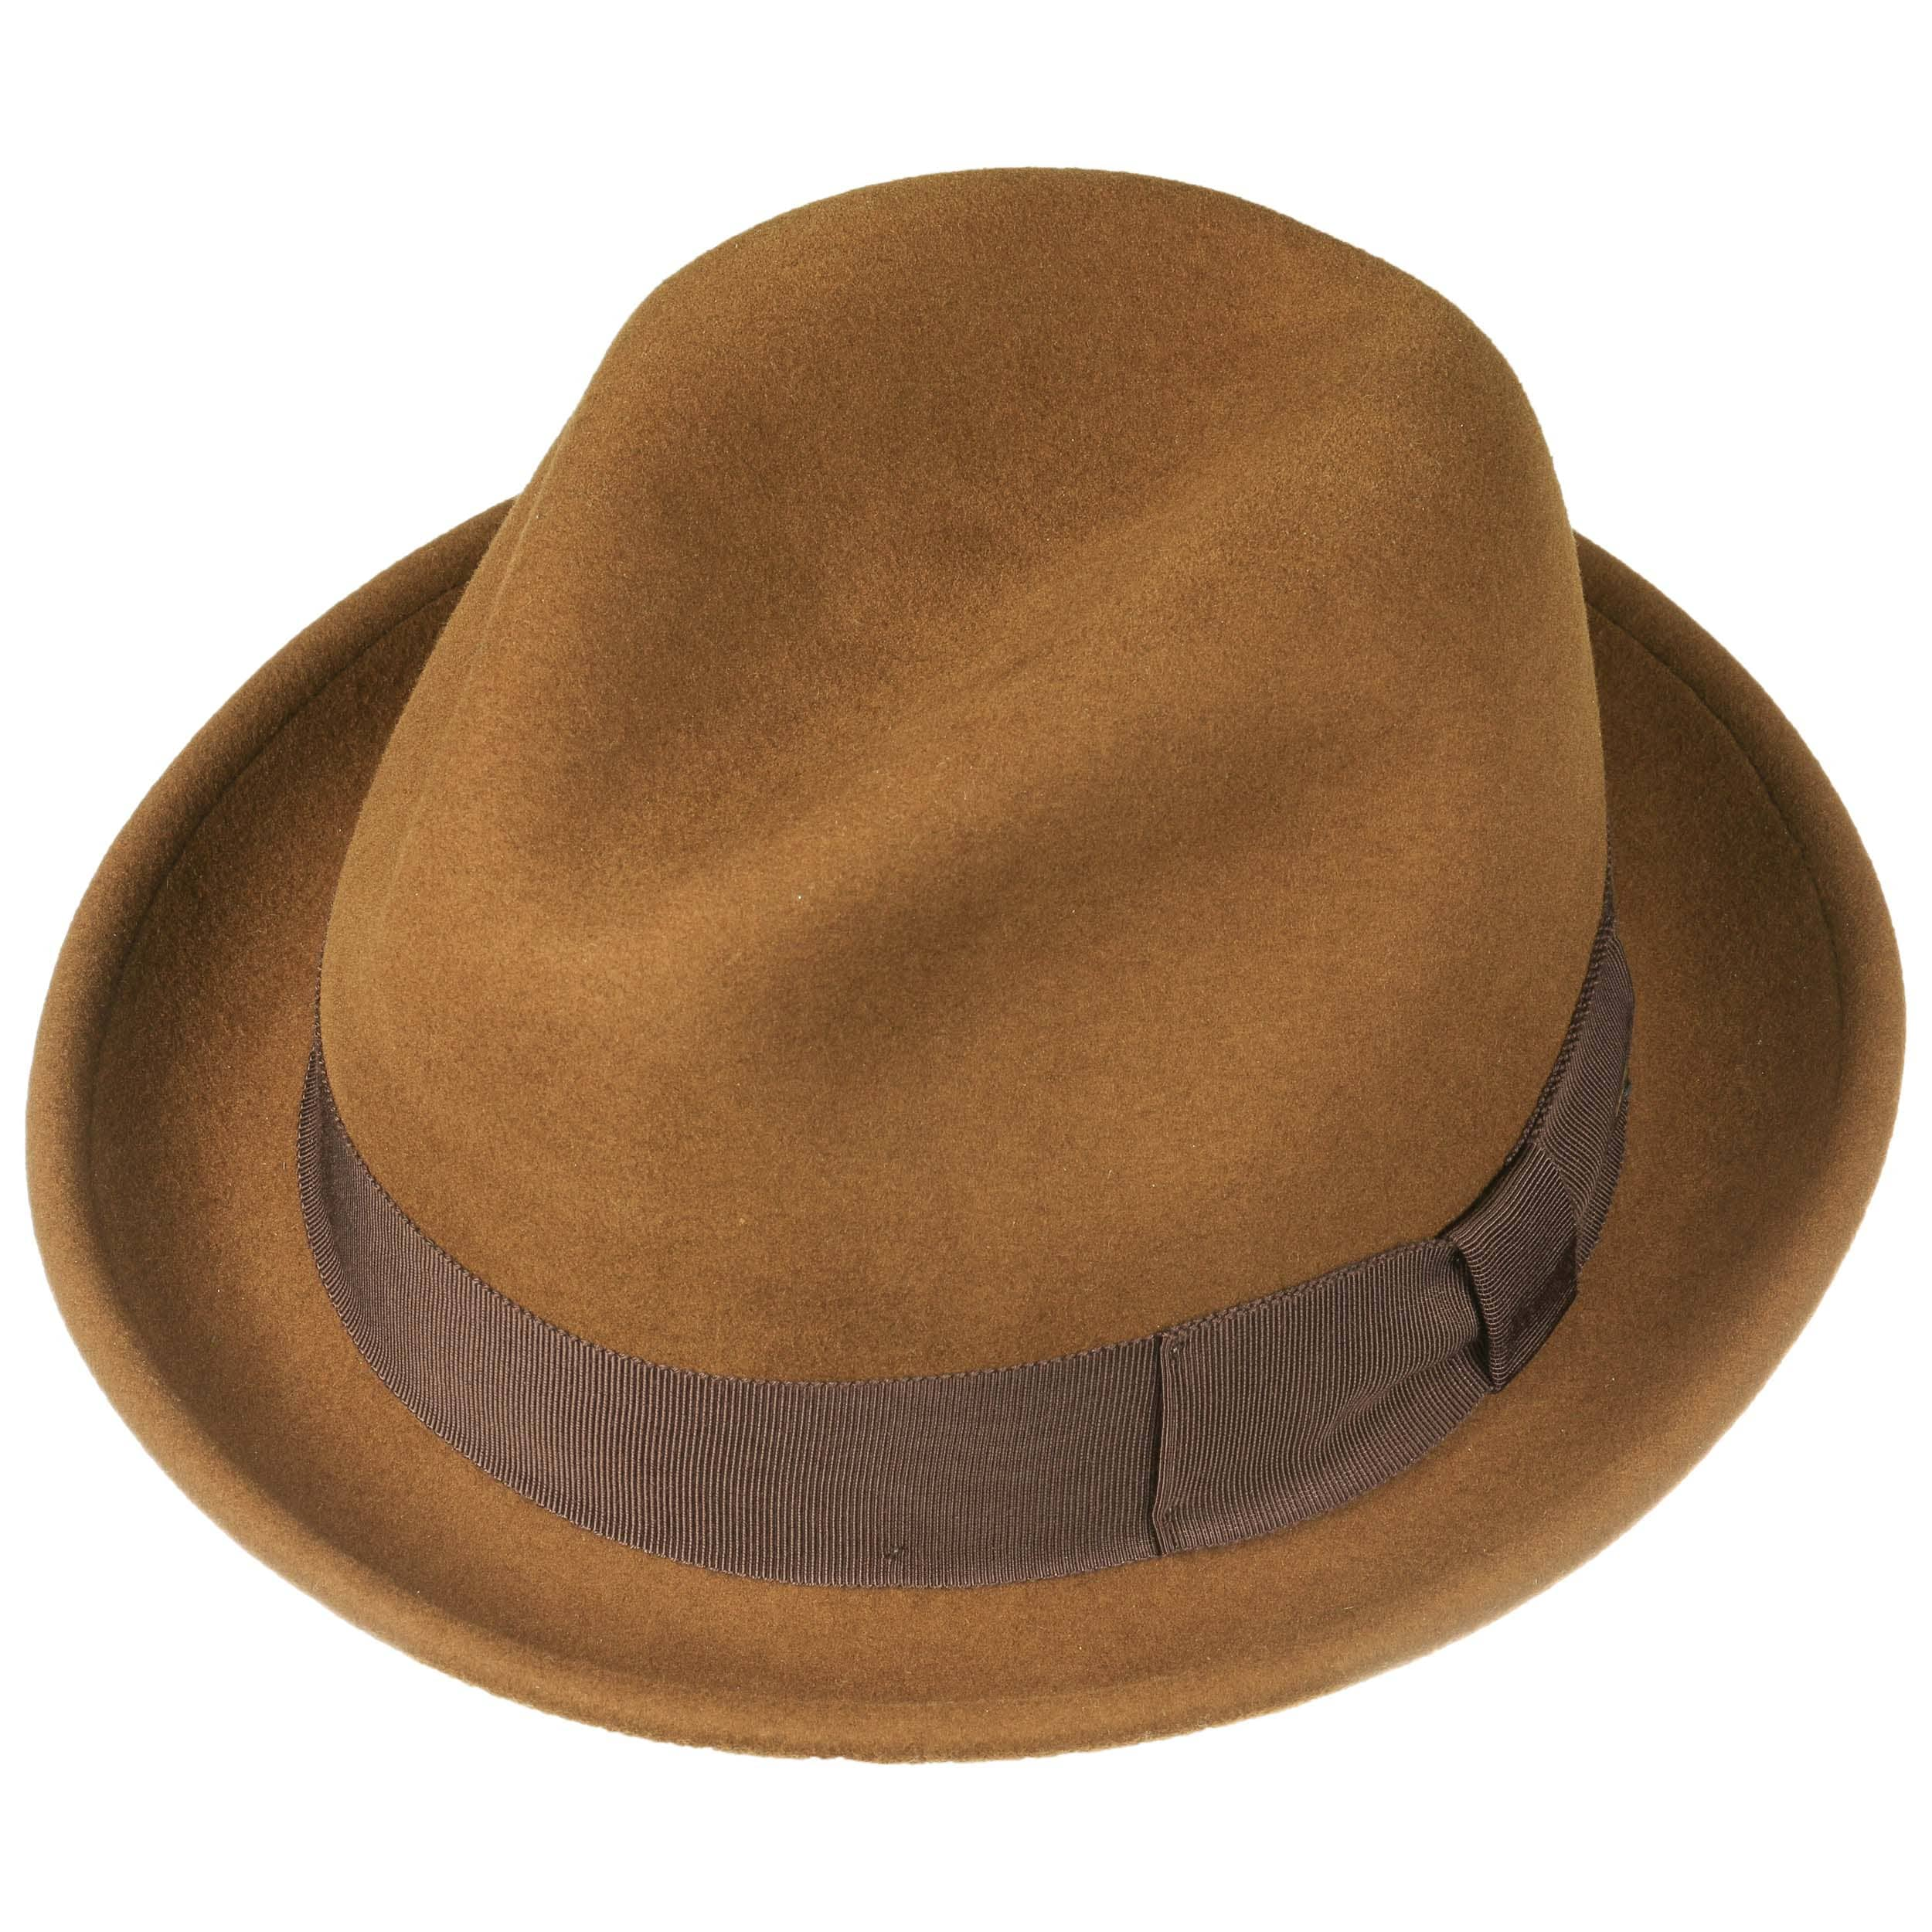 100+ Bailey Of Hollywood Tino Fedora. Find The Best Deals On Men S ... 4fdfb73d3609